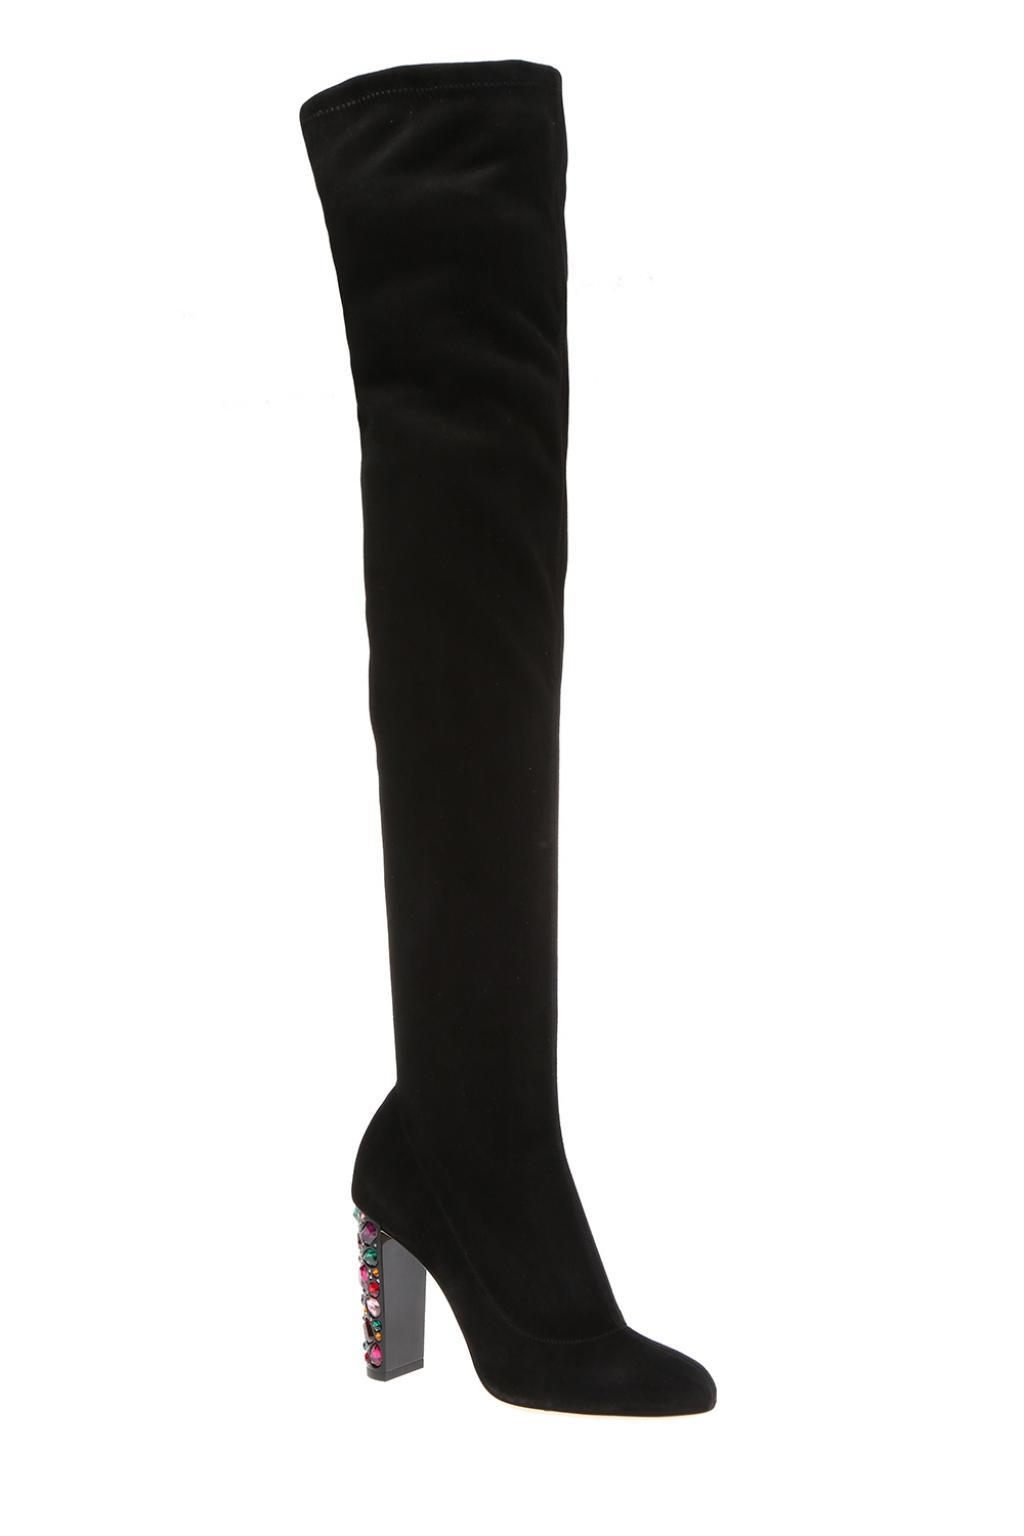 Jimmy Choo Suede 'maine' Over-the-knee Boots in Black